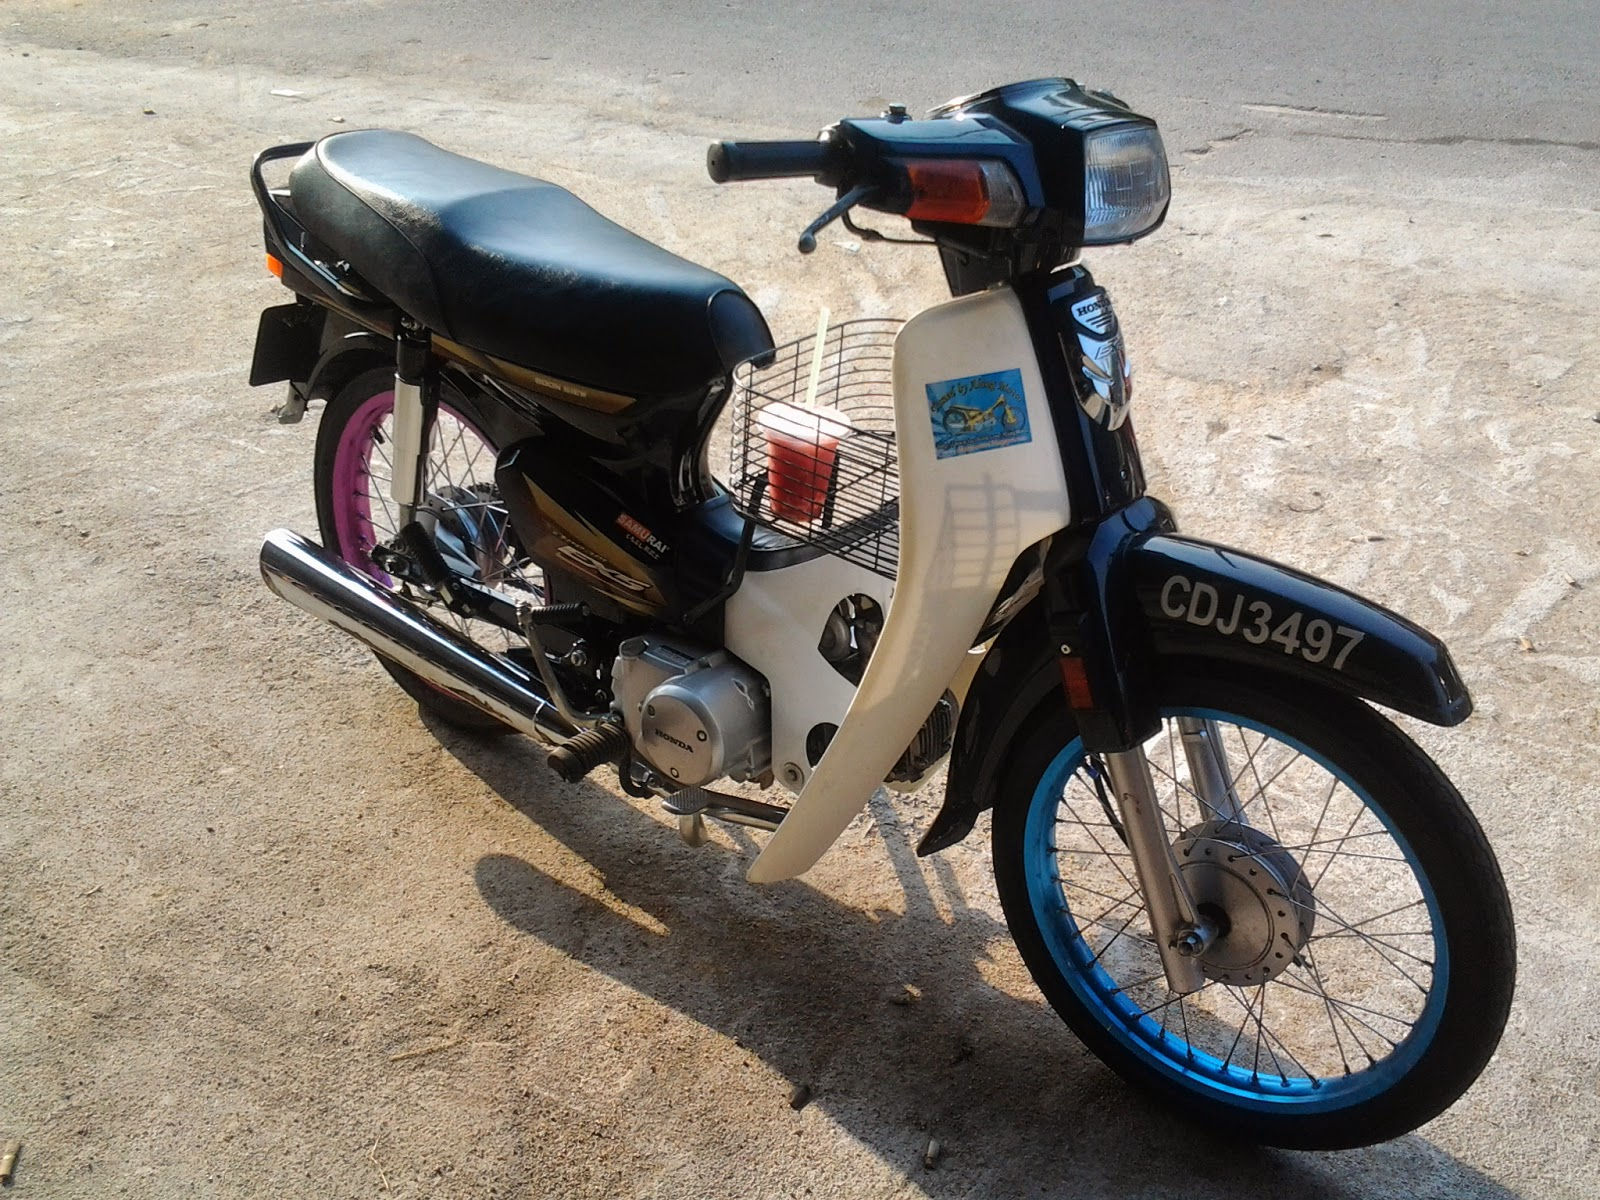 Download Ide 62 Modifikasi Motor Honda Ex5 Dream Terupdate Pojok